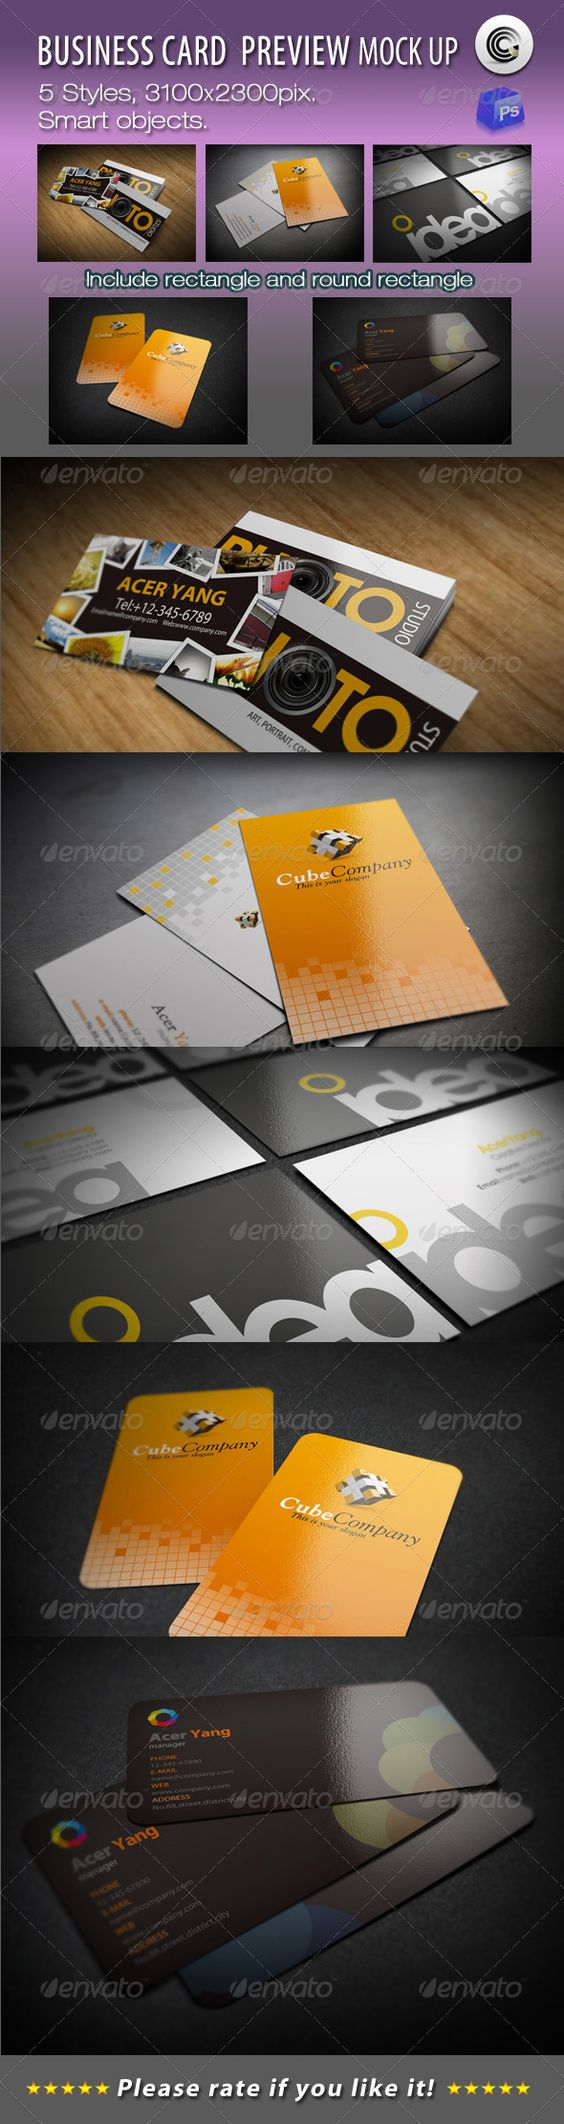 Business cards, Business and Cards on Pinterest